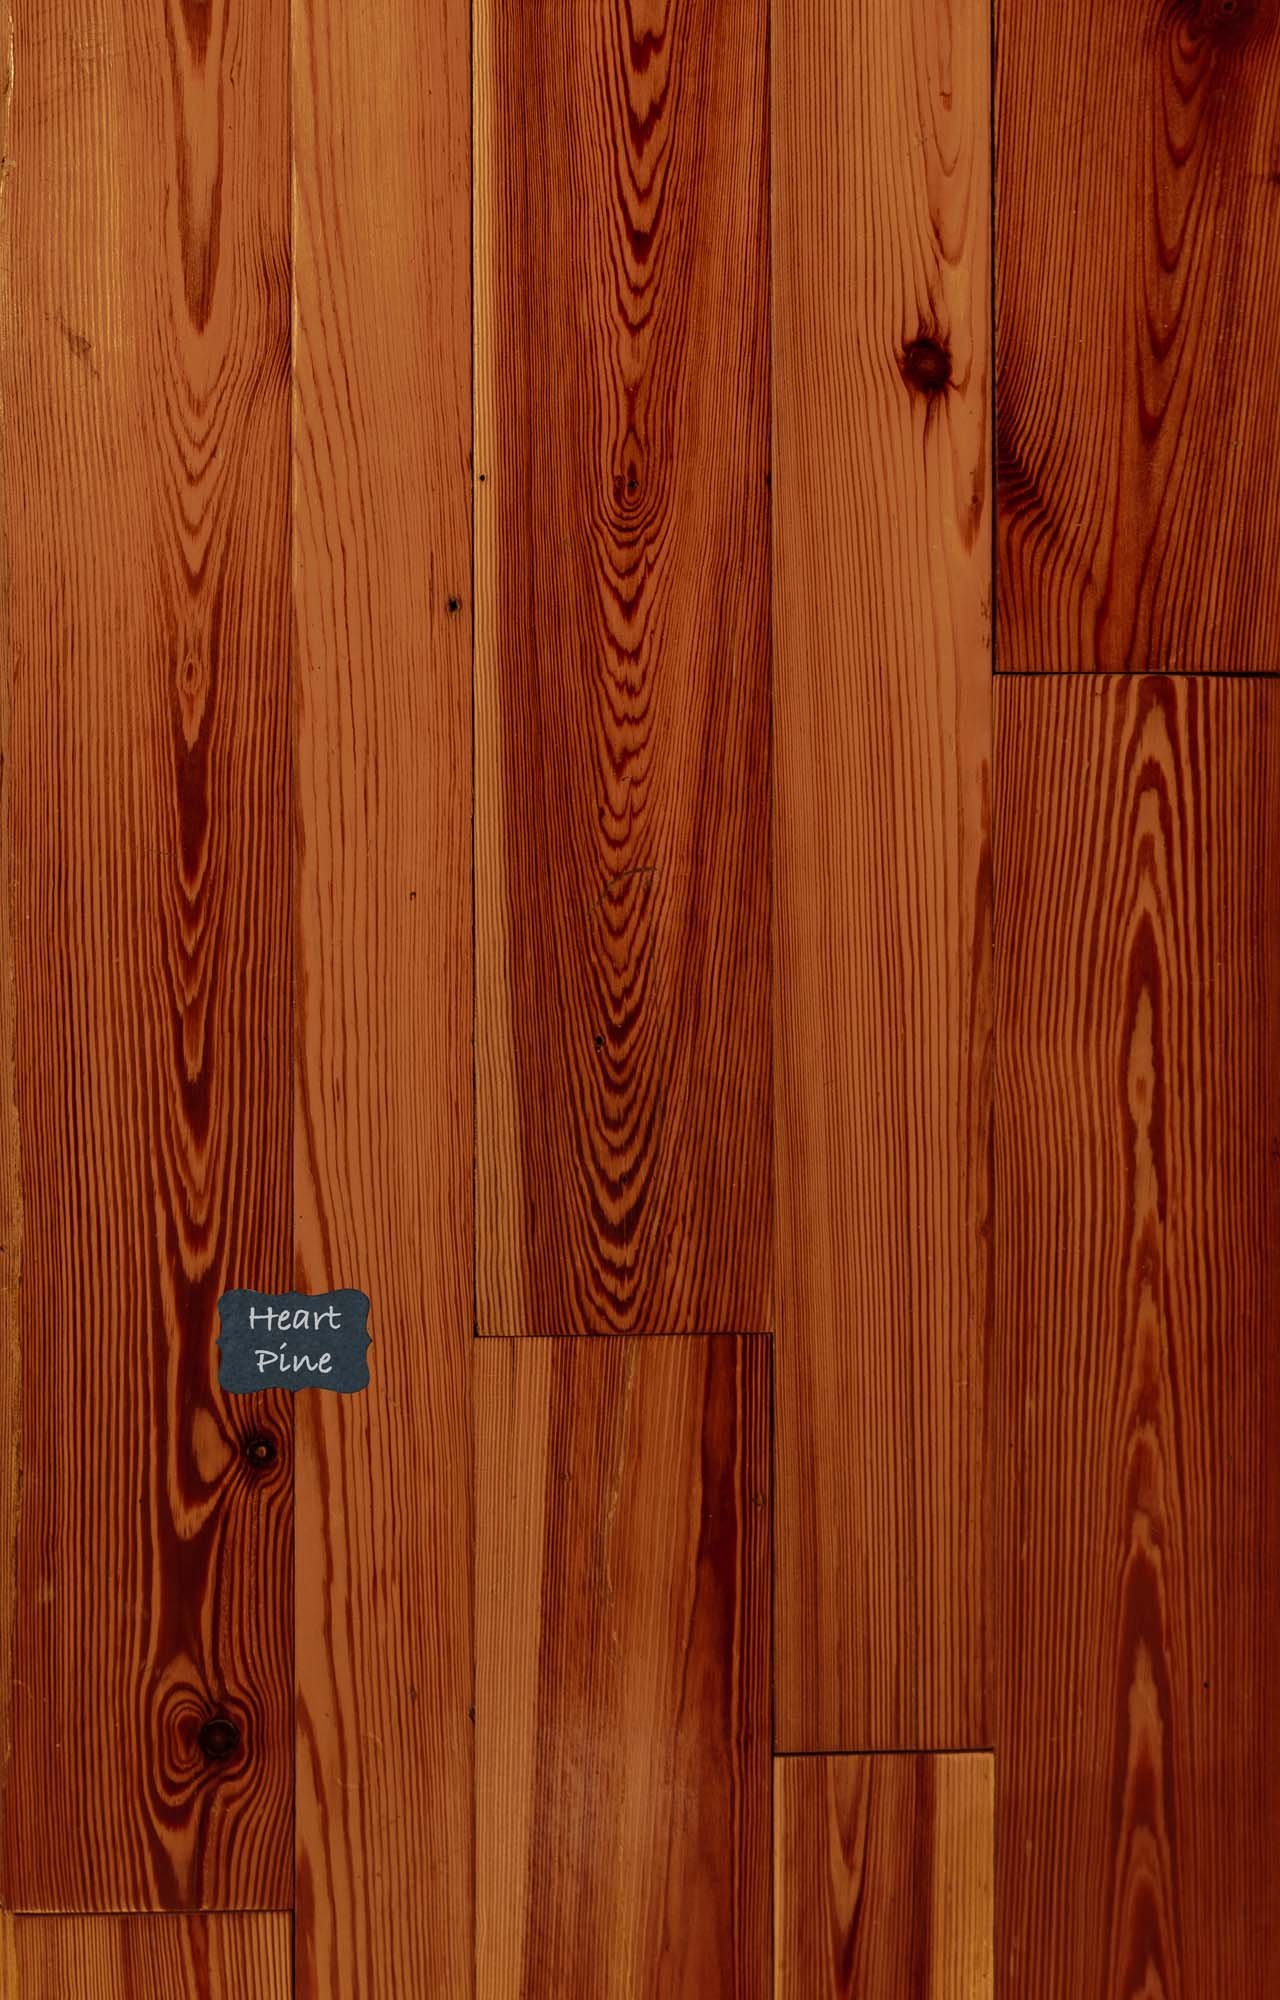 Hear Pine Reclaimed Wood Flooring. Our Reclaimed lineup is our premium quality product line with a unique and classic look